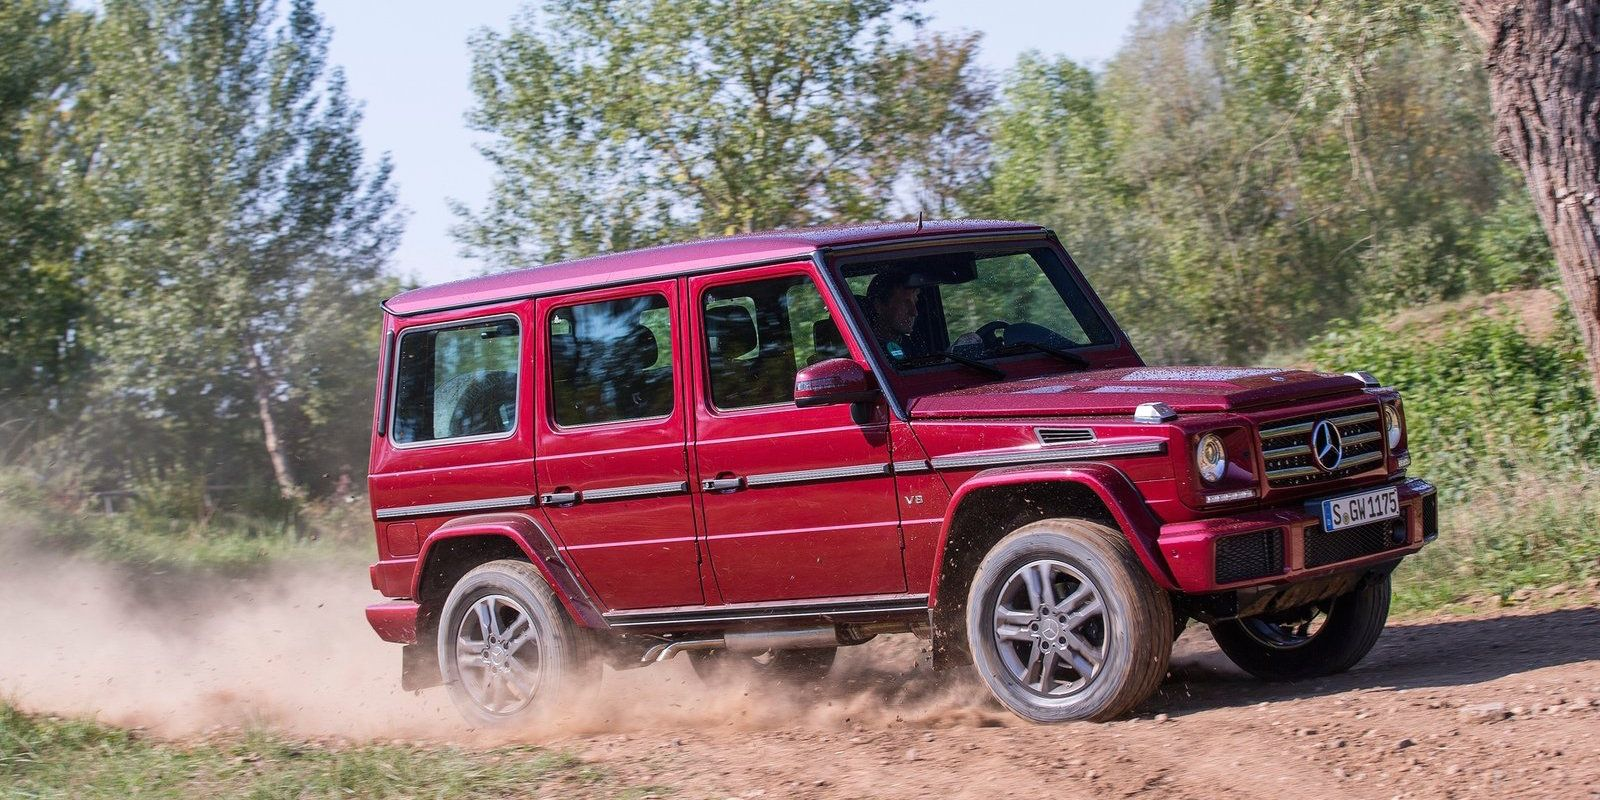 "<p>Yes, pricing for the <a href=""http://www.roadandtrack.com/new-cars/future-cars/news/a25678/2016-mercedes-g-class-gets-more-power-tiny-style-changes/"" target=""_blank"">Mercedes-Benz G550</a> starts at more than double the most expensive Wrangler, however, there's no arguing with its off-road abilities. With three locking differentials, there are very few places you can't go in a G-Wagen. Also like the wrangler, the G-Wagen is a true icon.</p>"